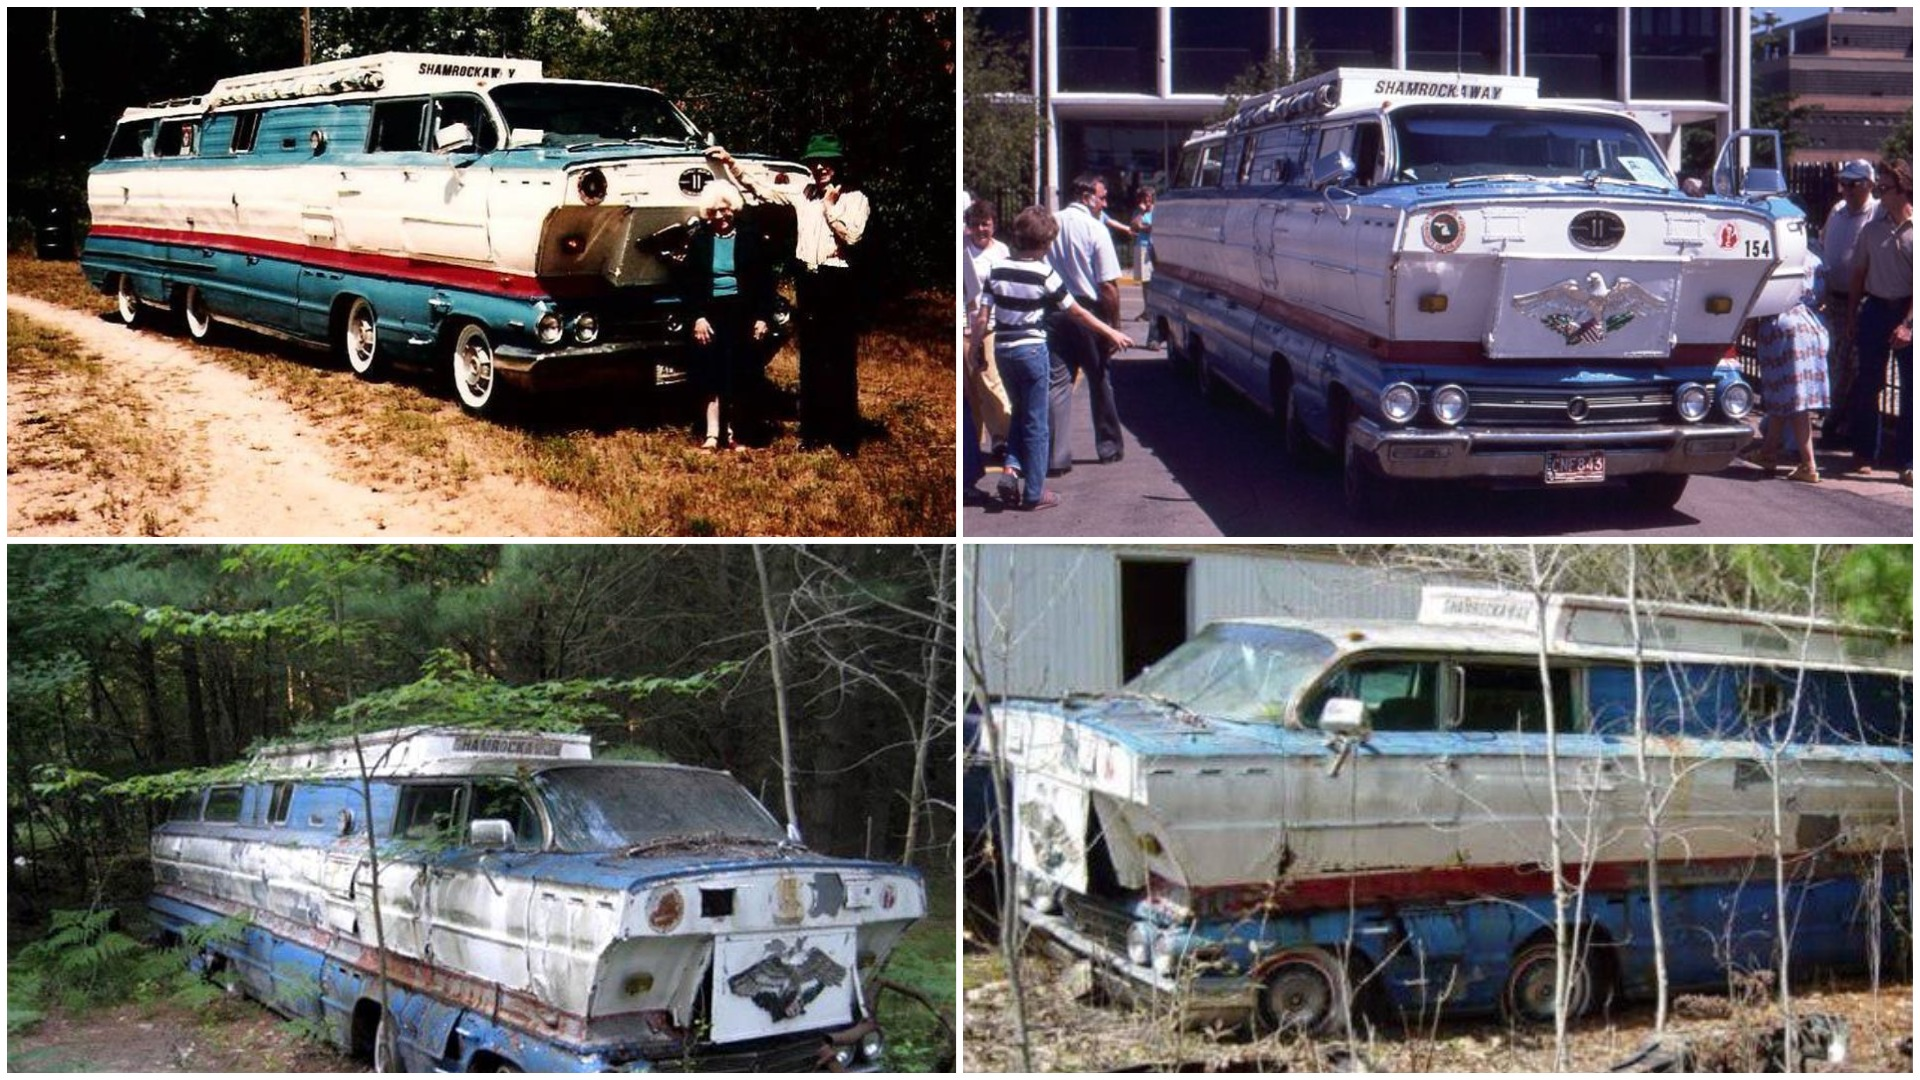 1962 Buick station wagons